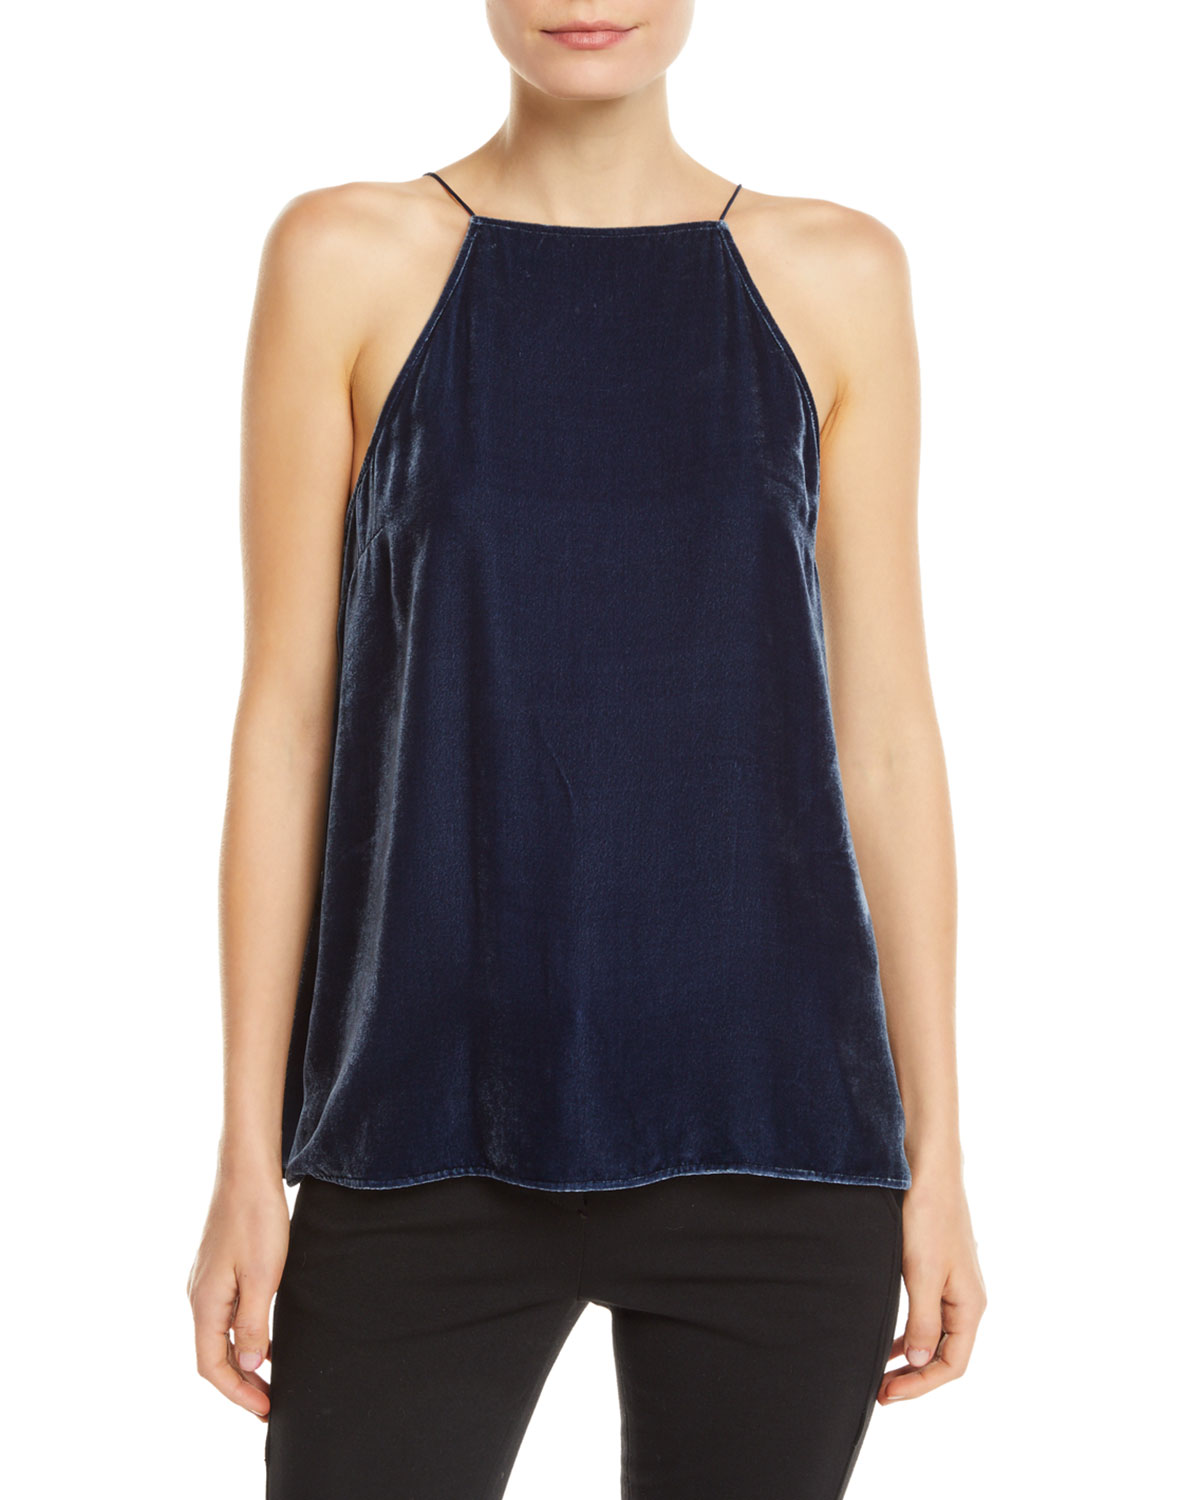 CAMI NYC The Charlie Velvet Lace-Up Cami in Dark Blue